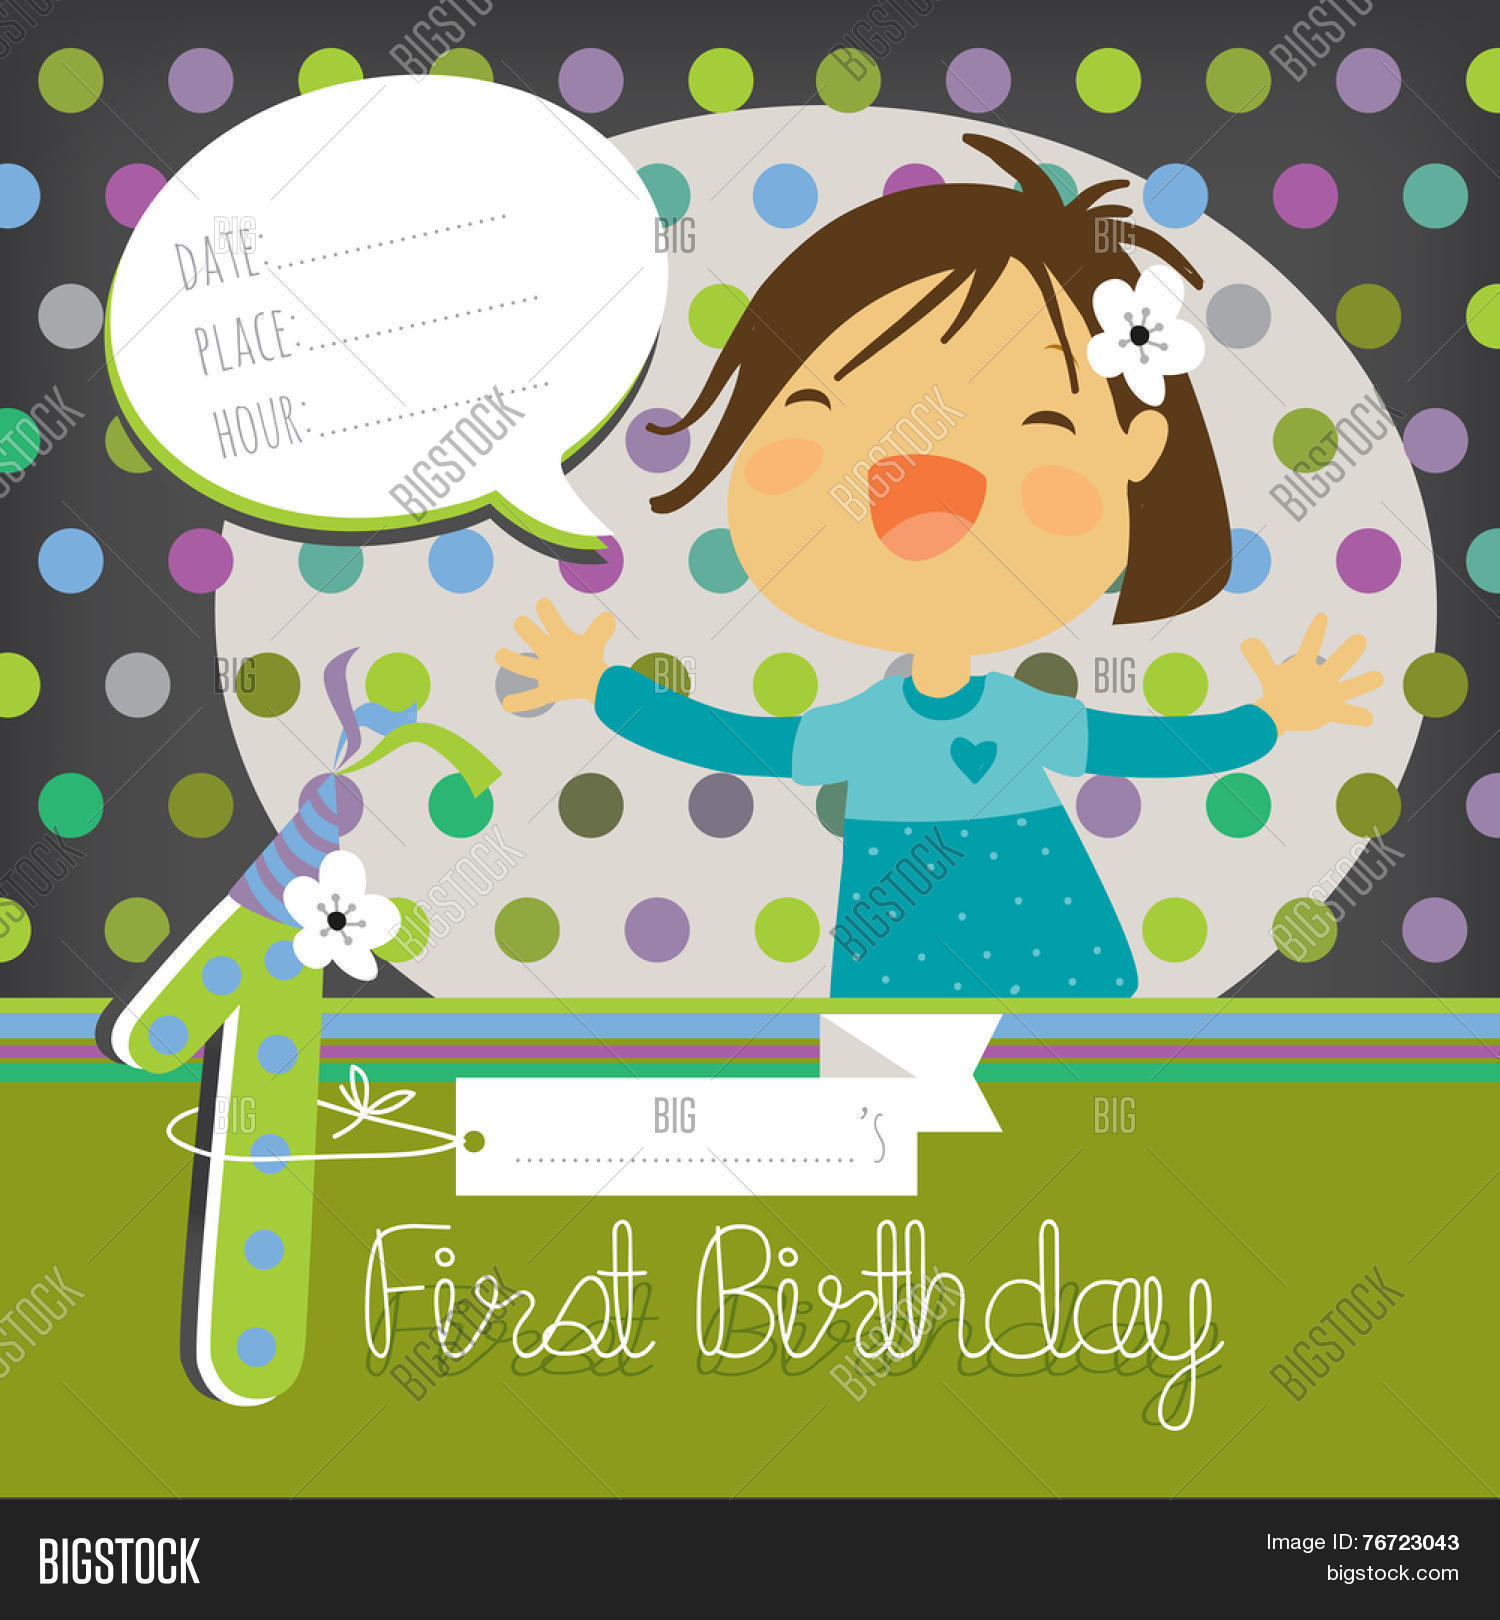 First birthday vector happy vector photo bigstock first birthday vector happy birthday greeting card birthday invitation anniversary celebration greeting card stopboris Gallery